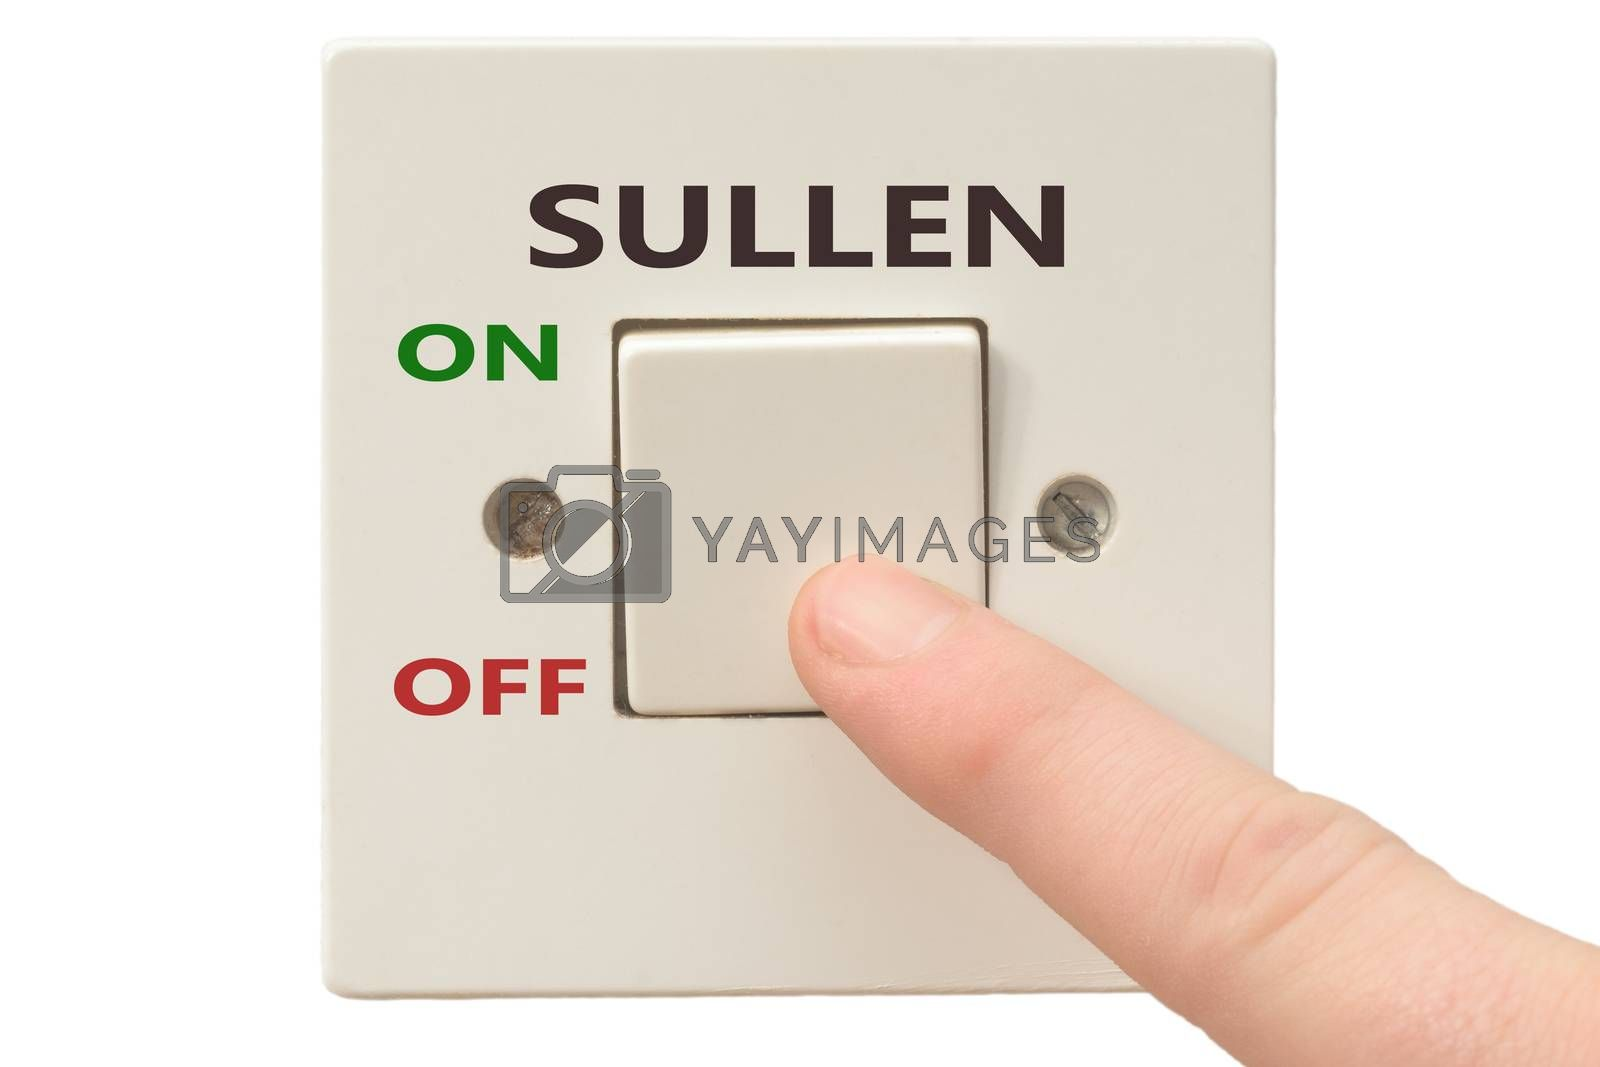 Turning off Sullen with finger on electrical switch